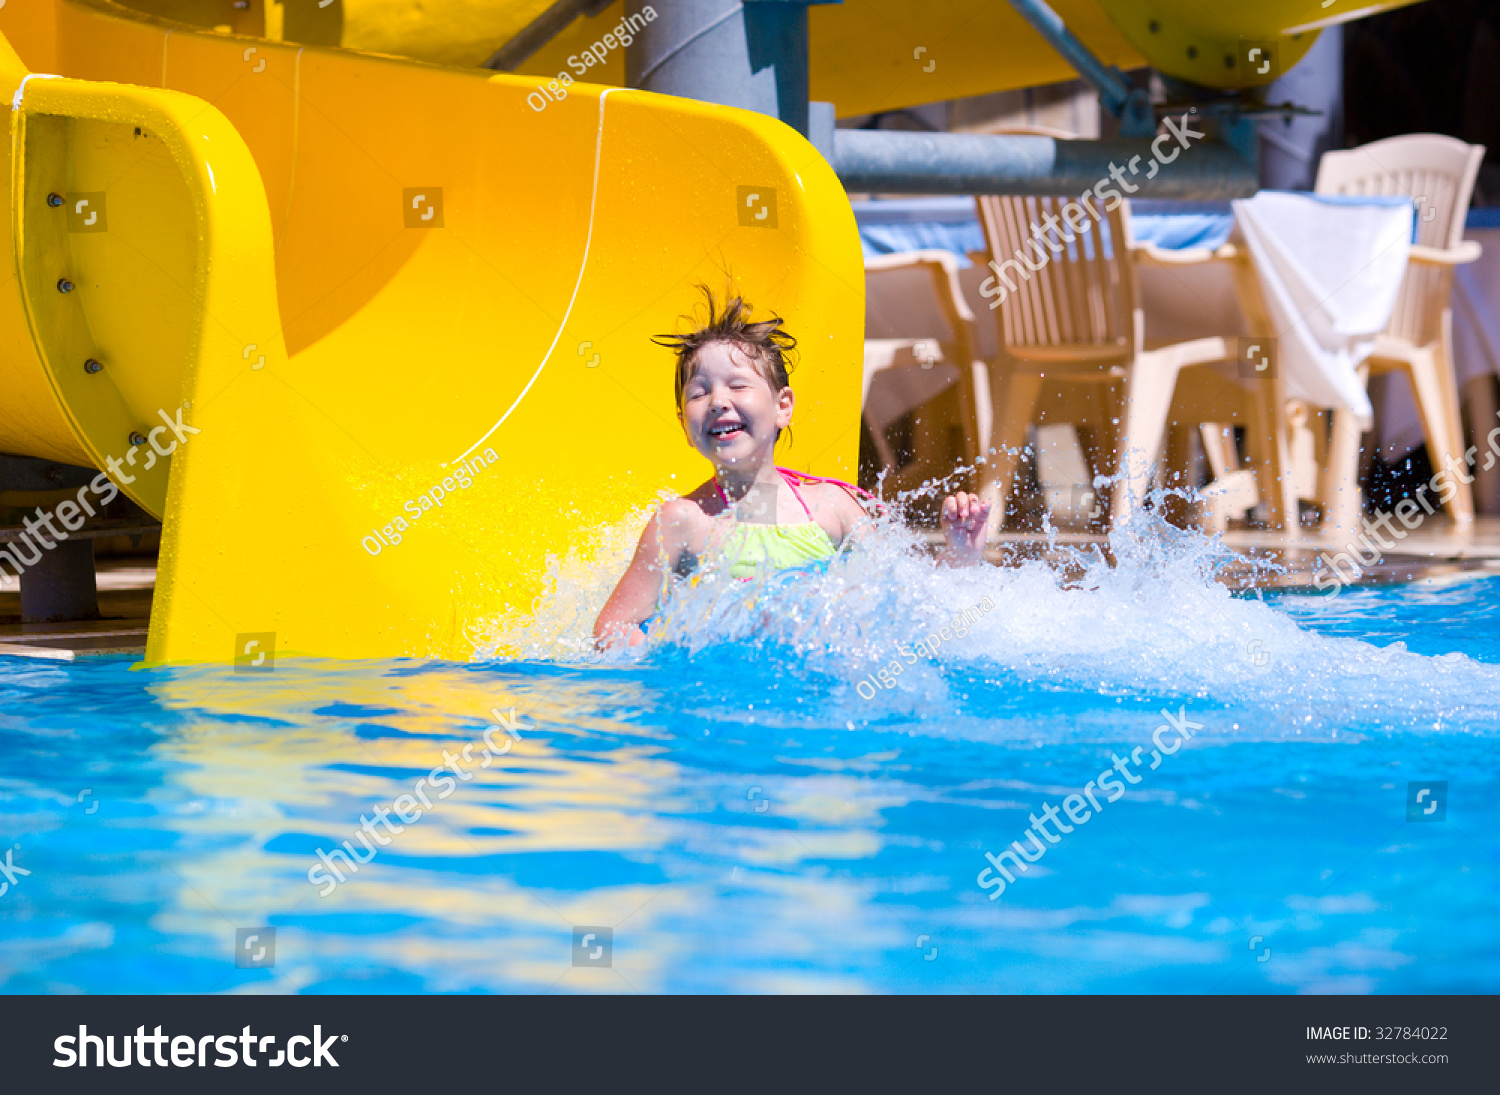 Girl Sliding Pool During Turkey Vacations Stock Photo 32784022 Shutterstock